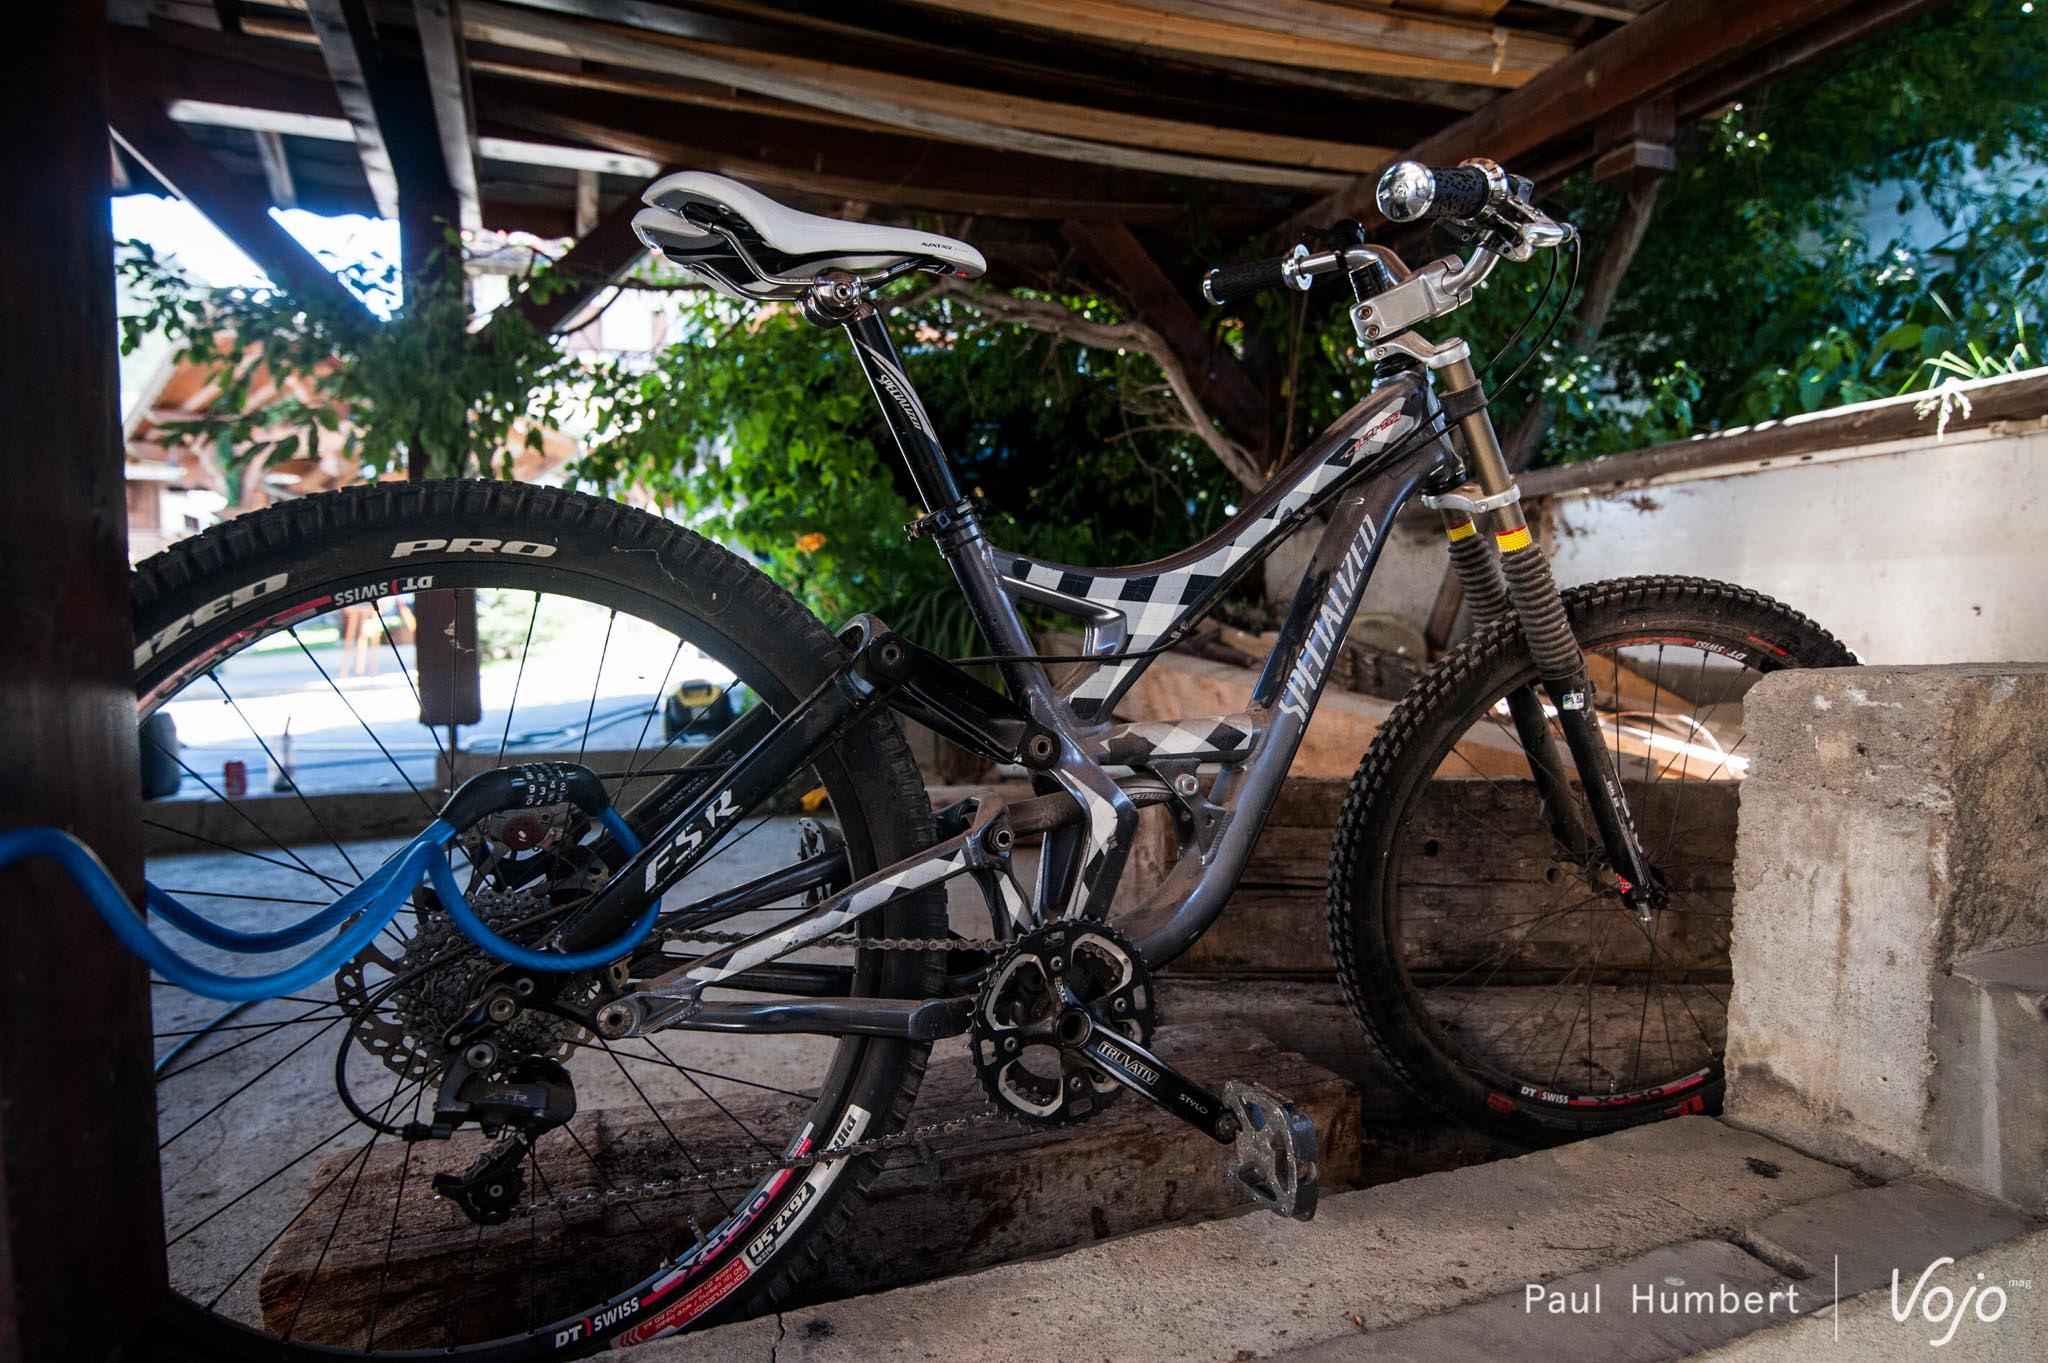 specialized-2016-paul-humbert-19